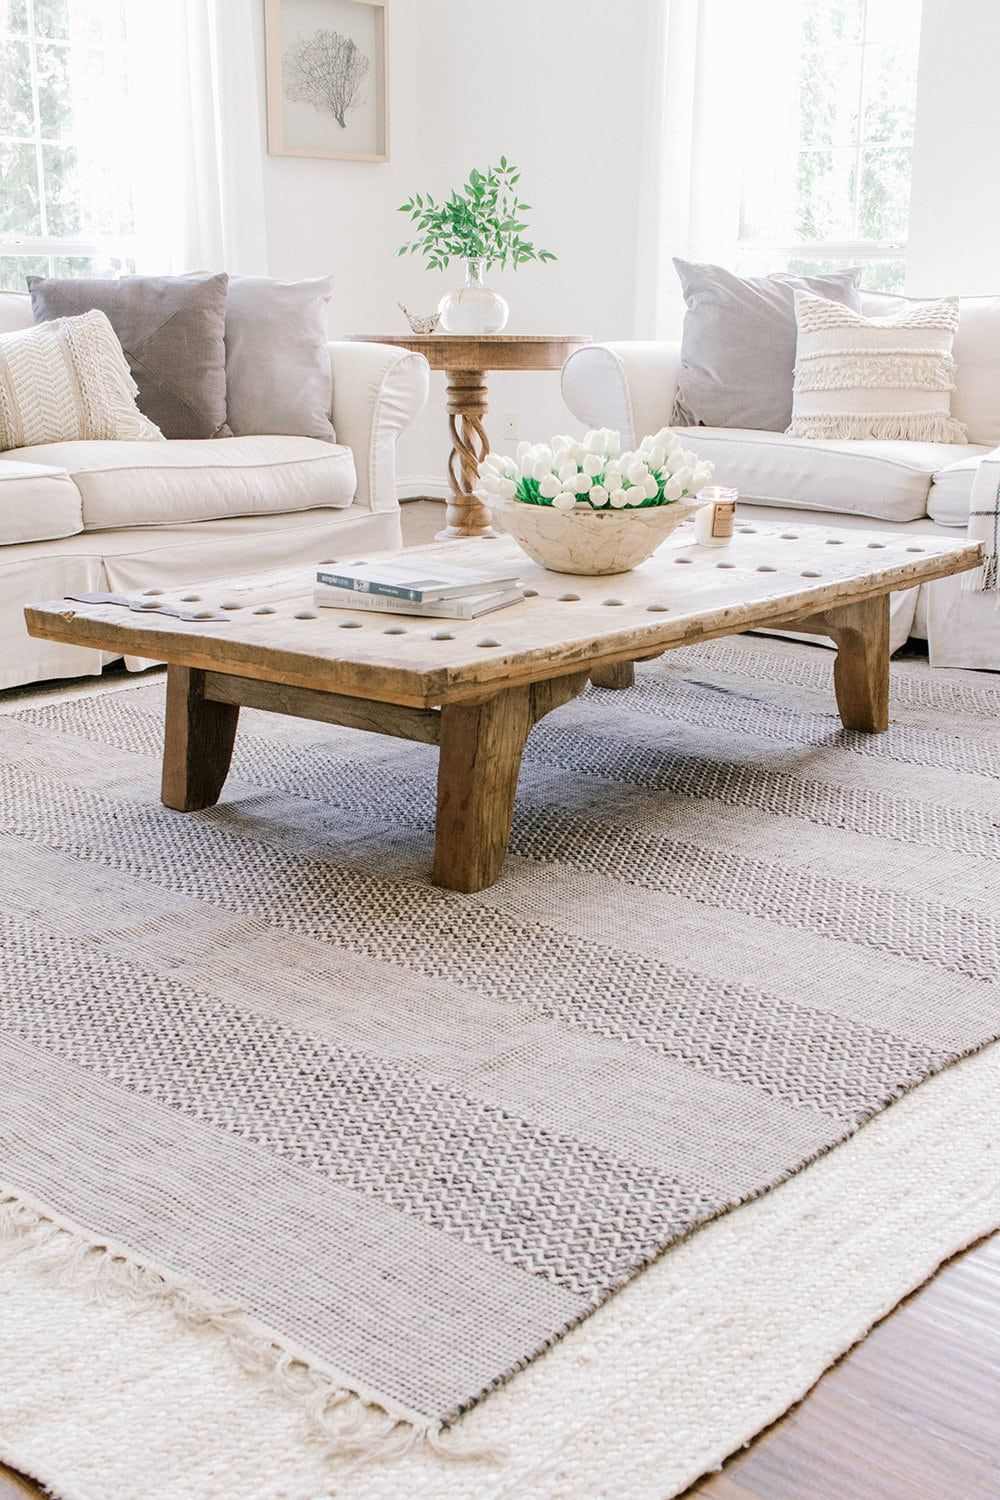 40 Rugs In Living Room Ideas Living Room Designs Living Room Decor Living Room Inspiration